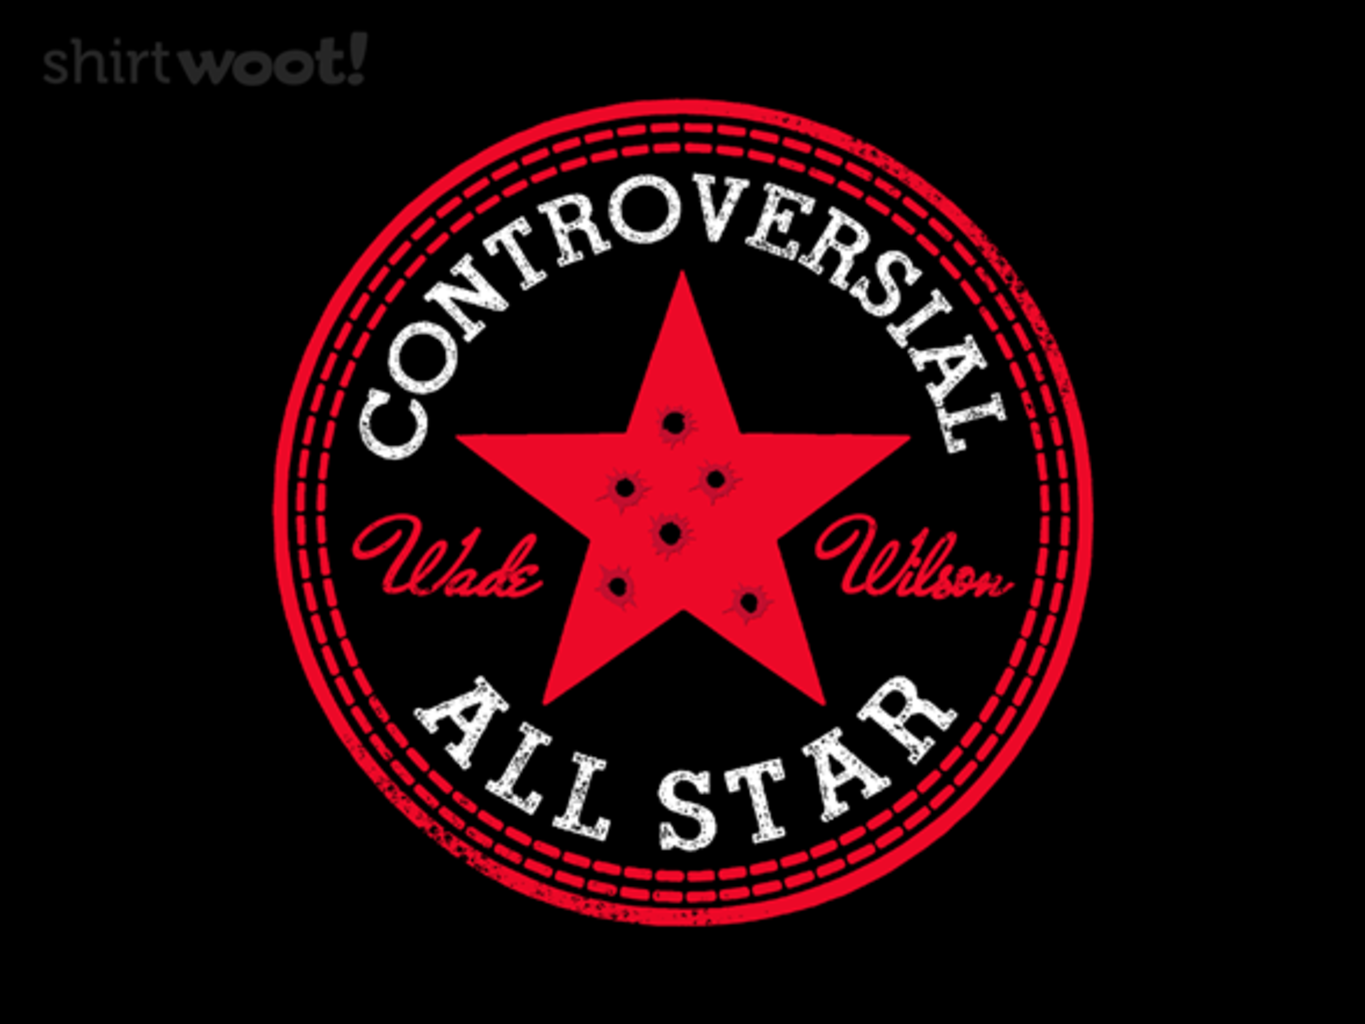 Woot!: Controversial All Star